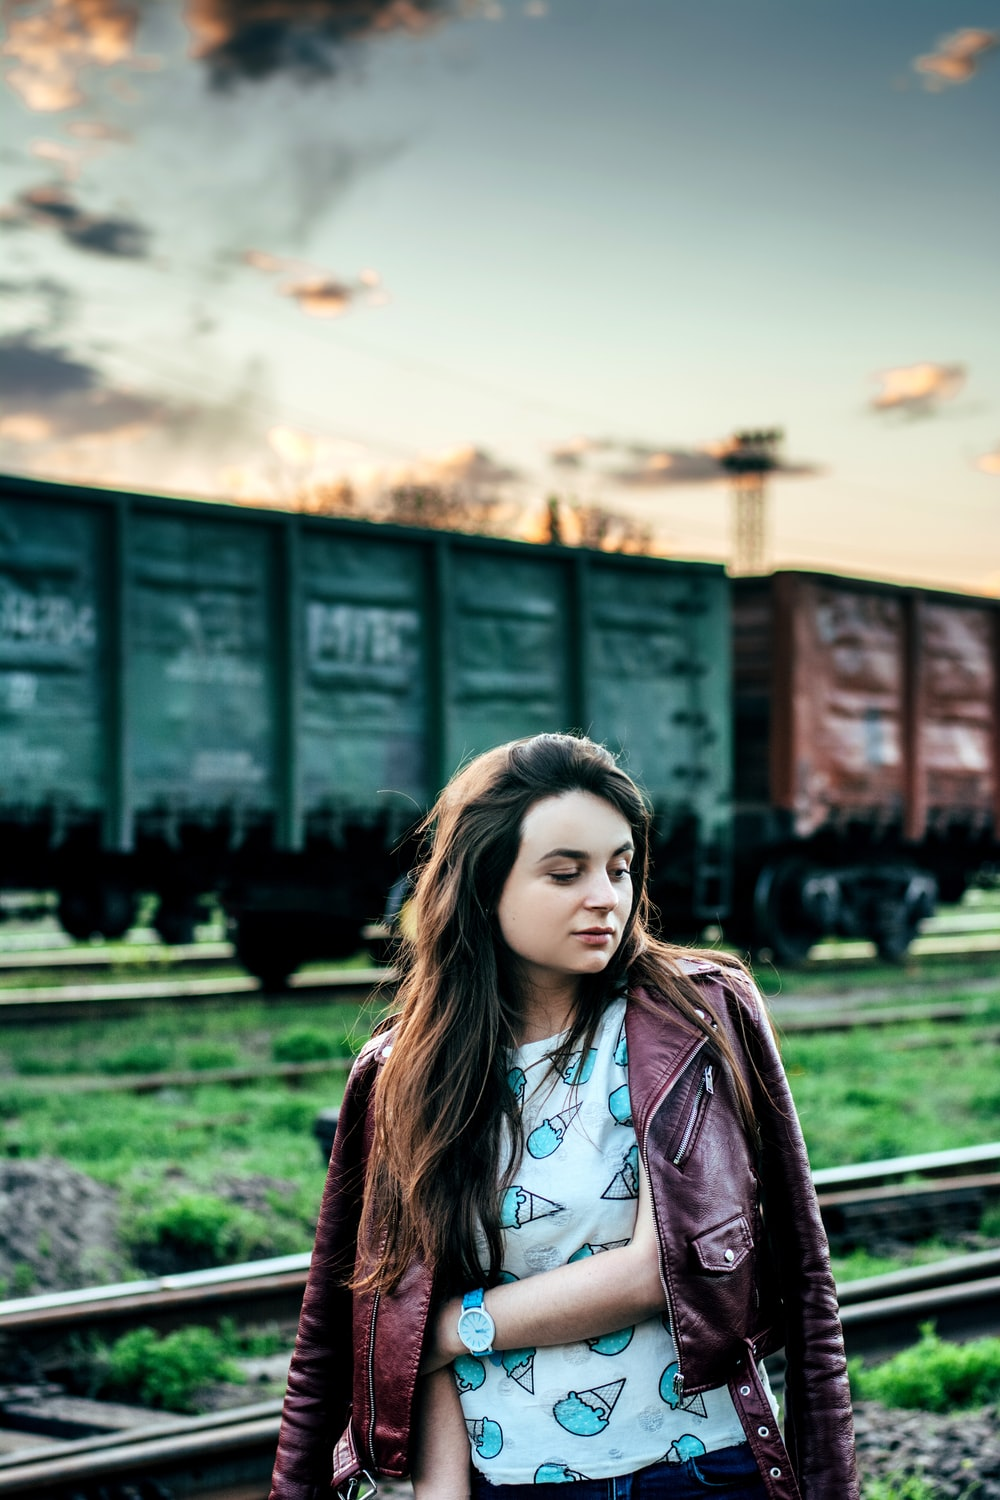 woman standing near train on selective focus photography